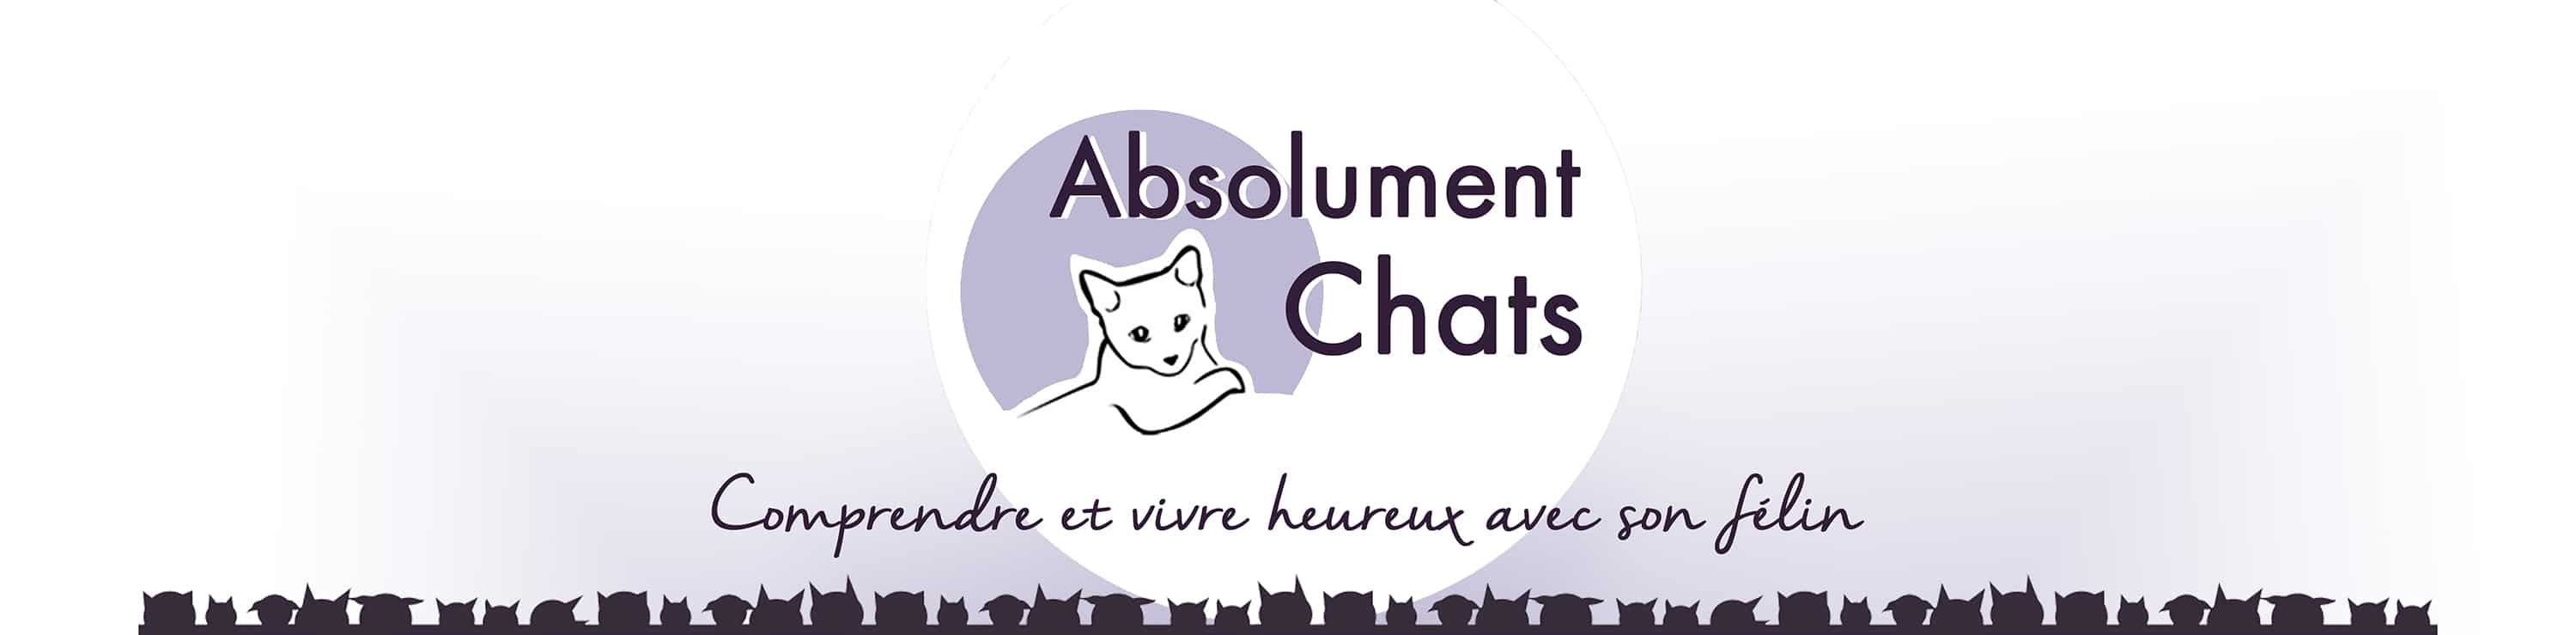 Absolument Chats